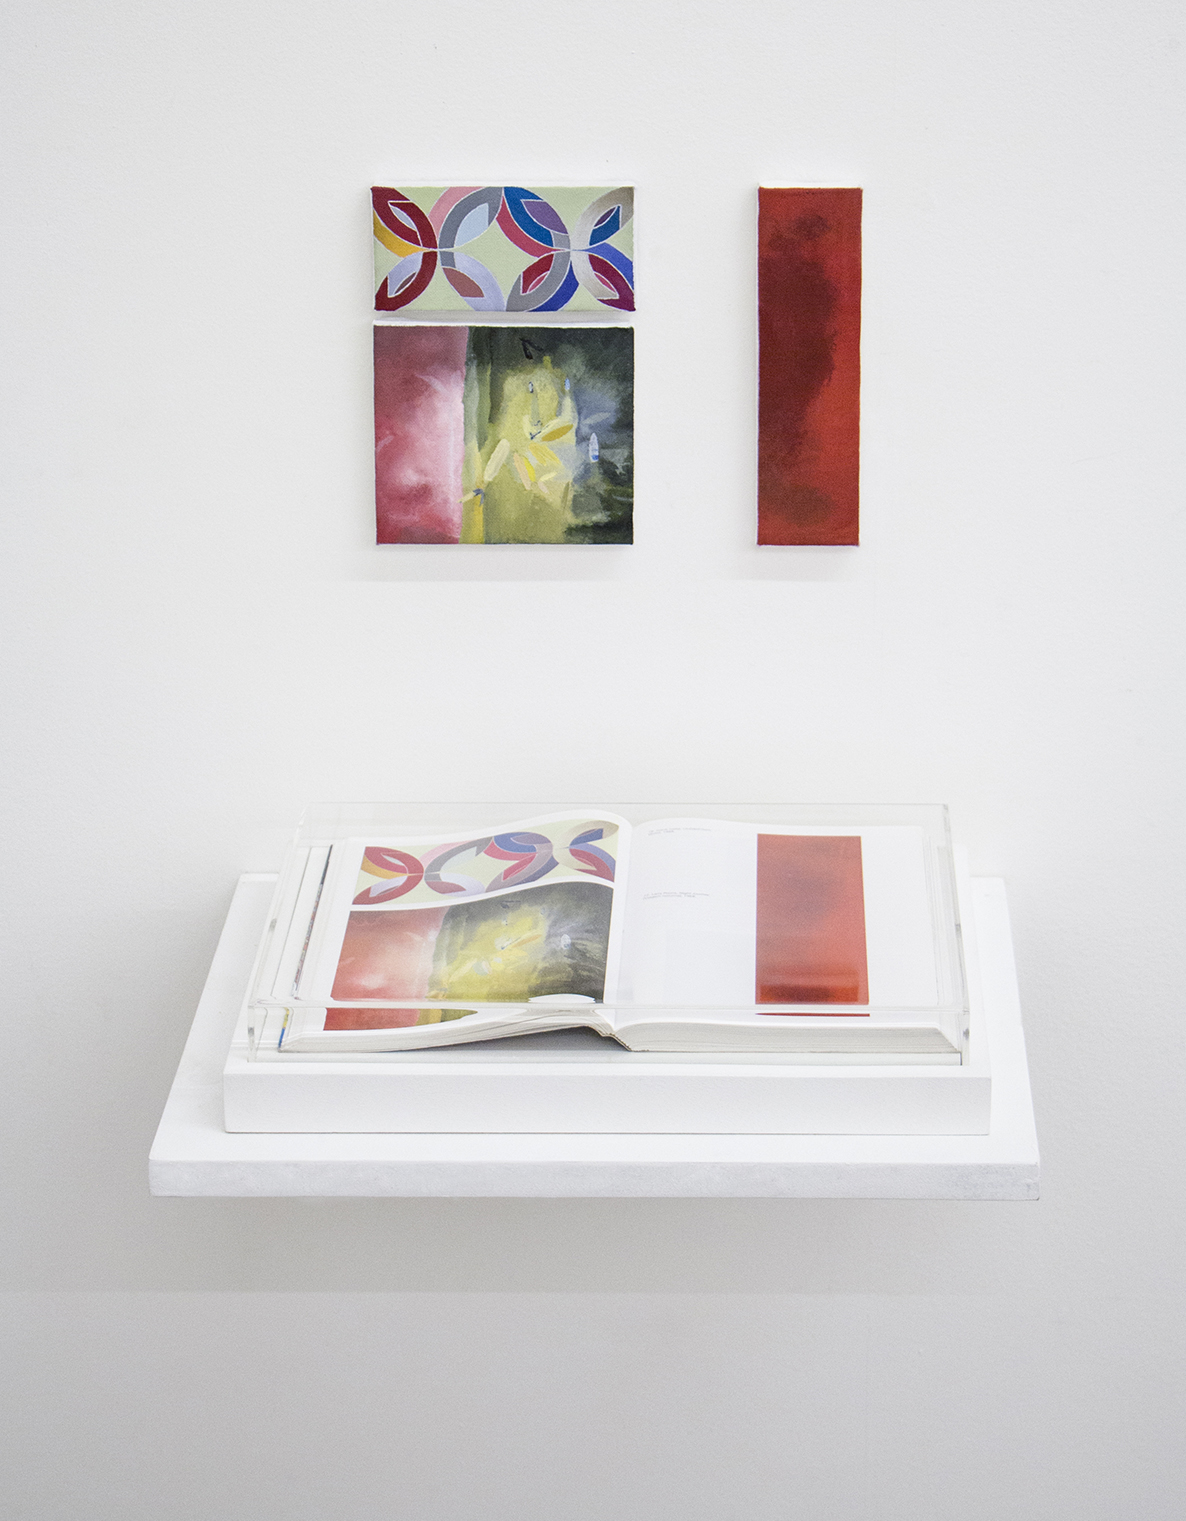 Unnumbered Pages(That's How I Was Taught series  ) •2014 • Framed book, oil on canvas • 8.45 x 12.2 in (book), 5.1 x 2.55 in, 5.1 x 4.3 in, 2 x 7.3 in